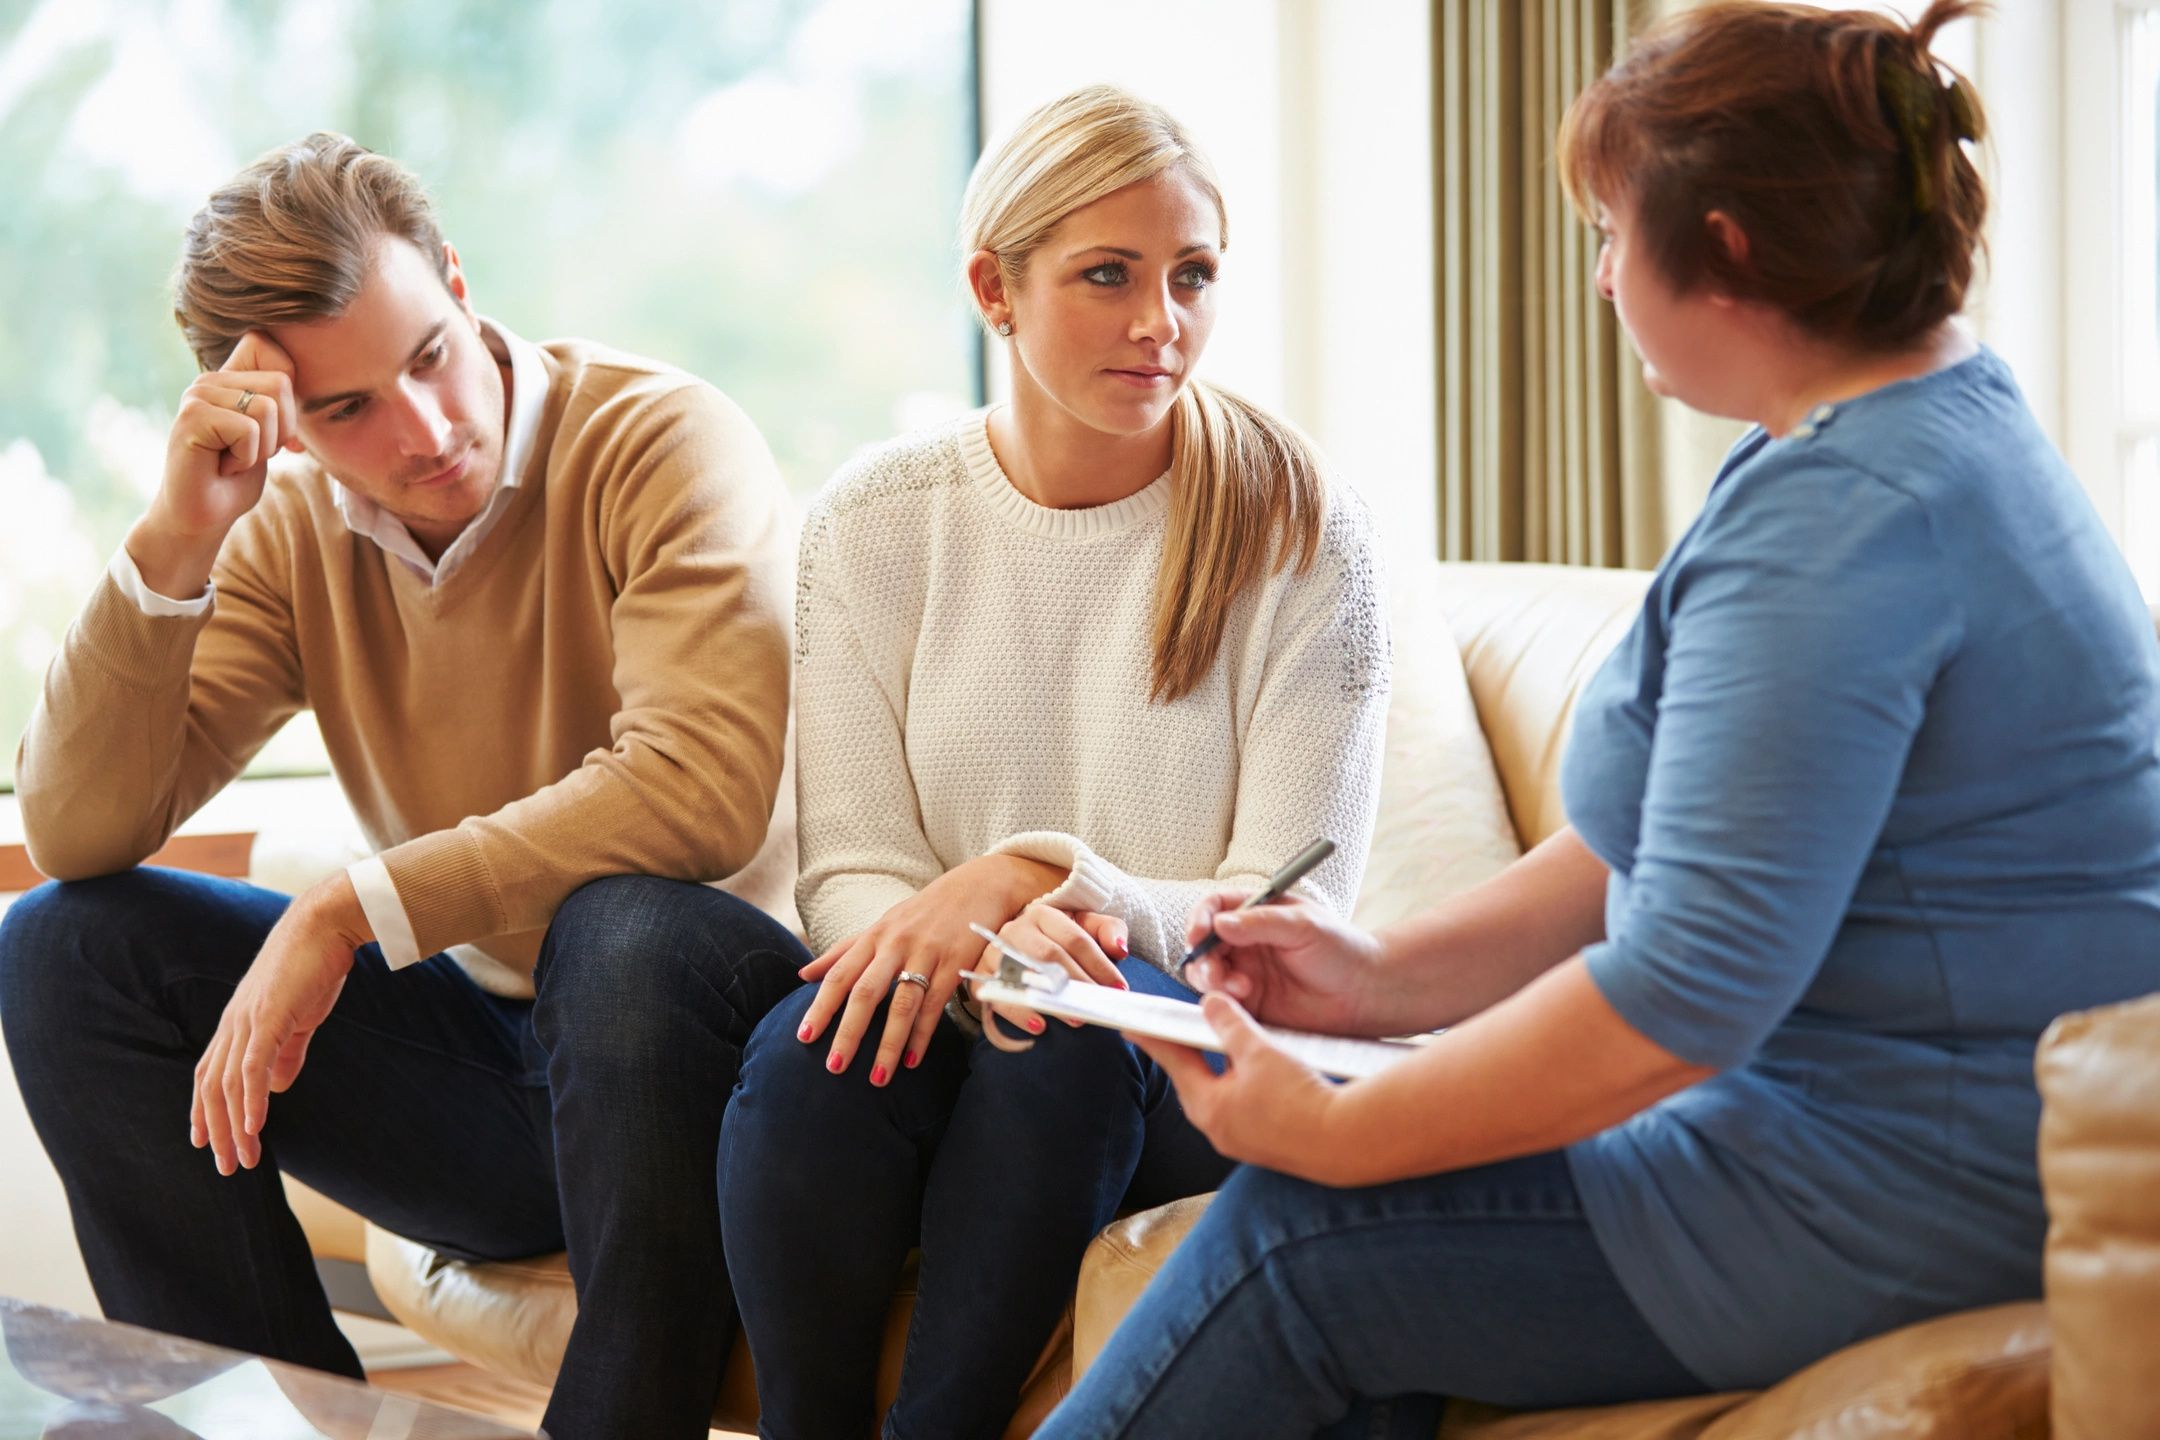 affordable counseling sulphur springs marriage counseling